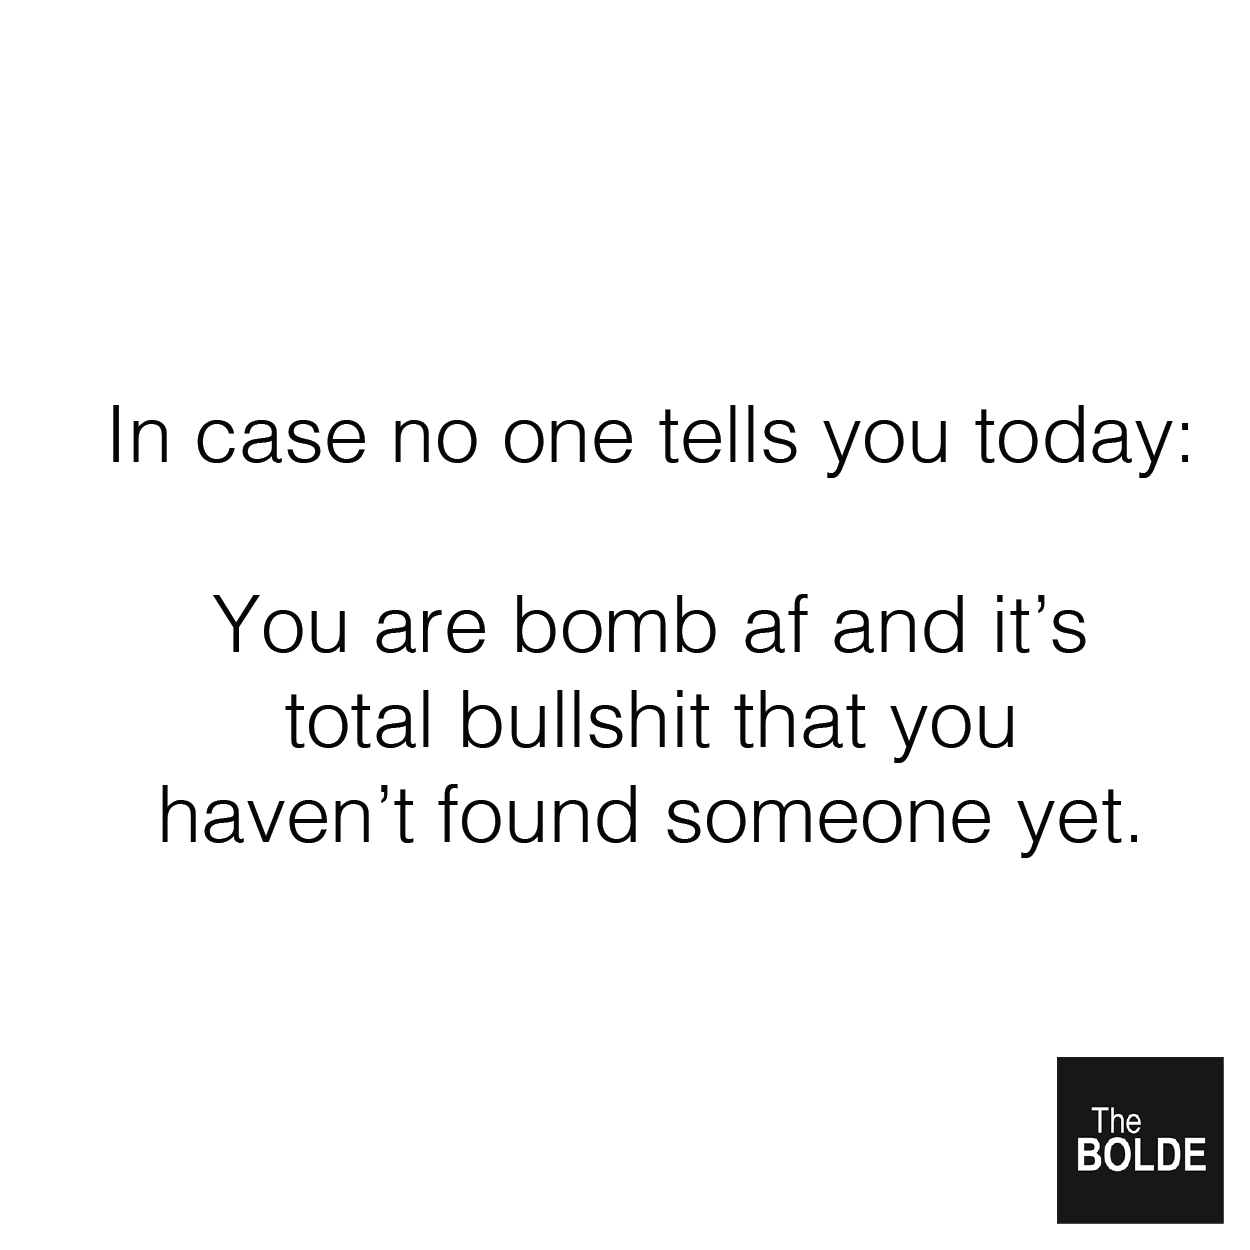 In case nobody tells you today, you're bomb AF